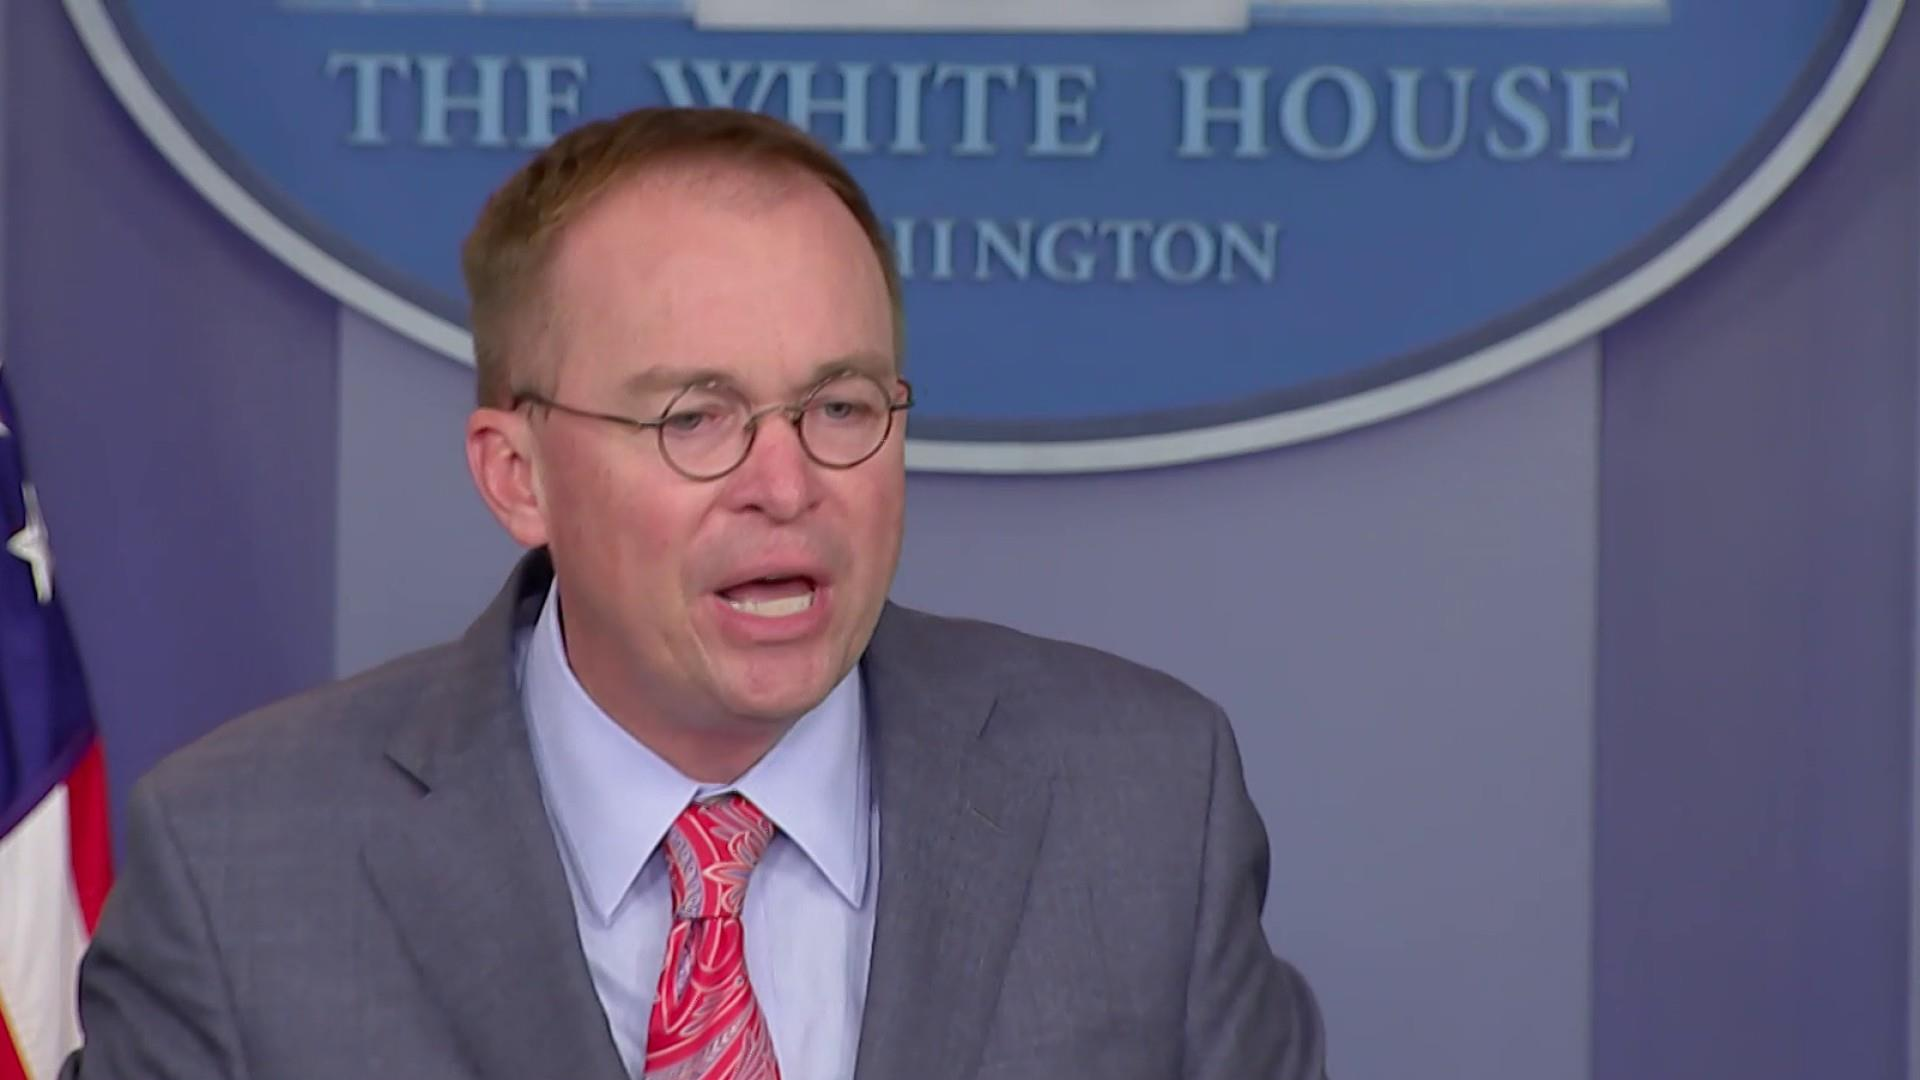 Politico: White House frustrated with Mulvaney's quid pro quo admission